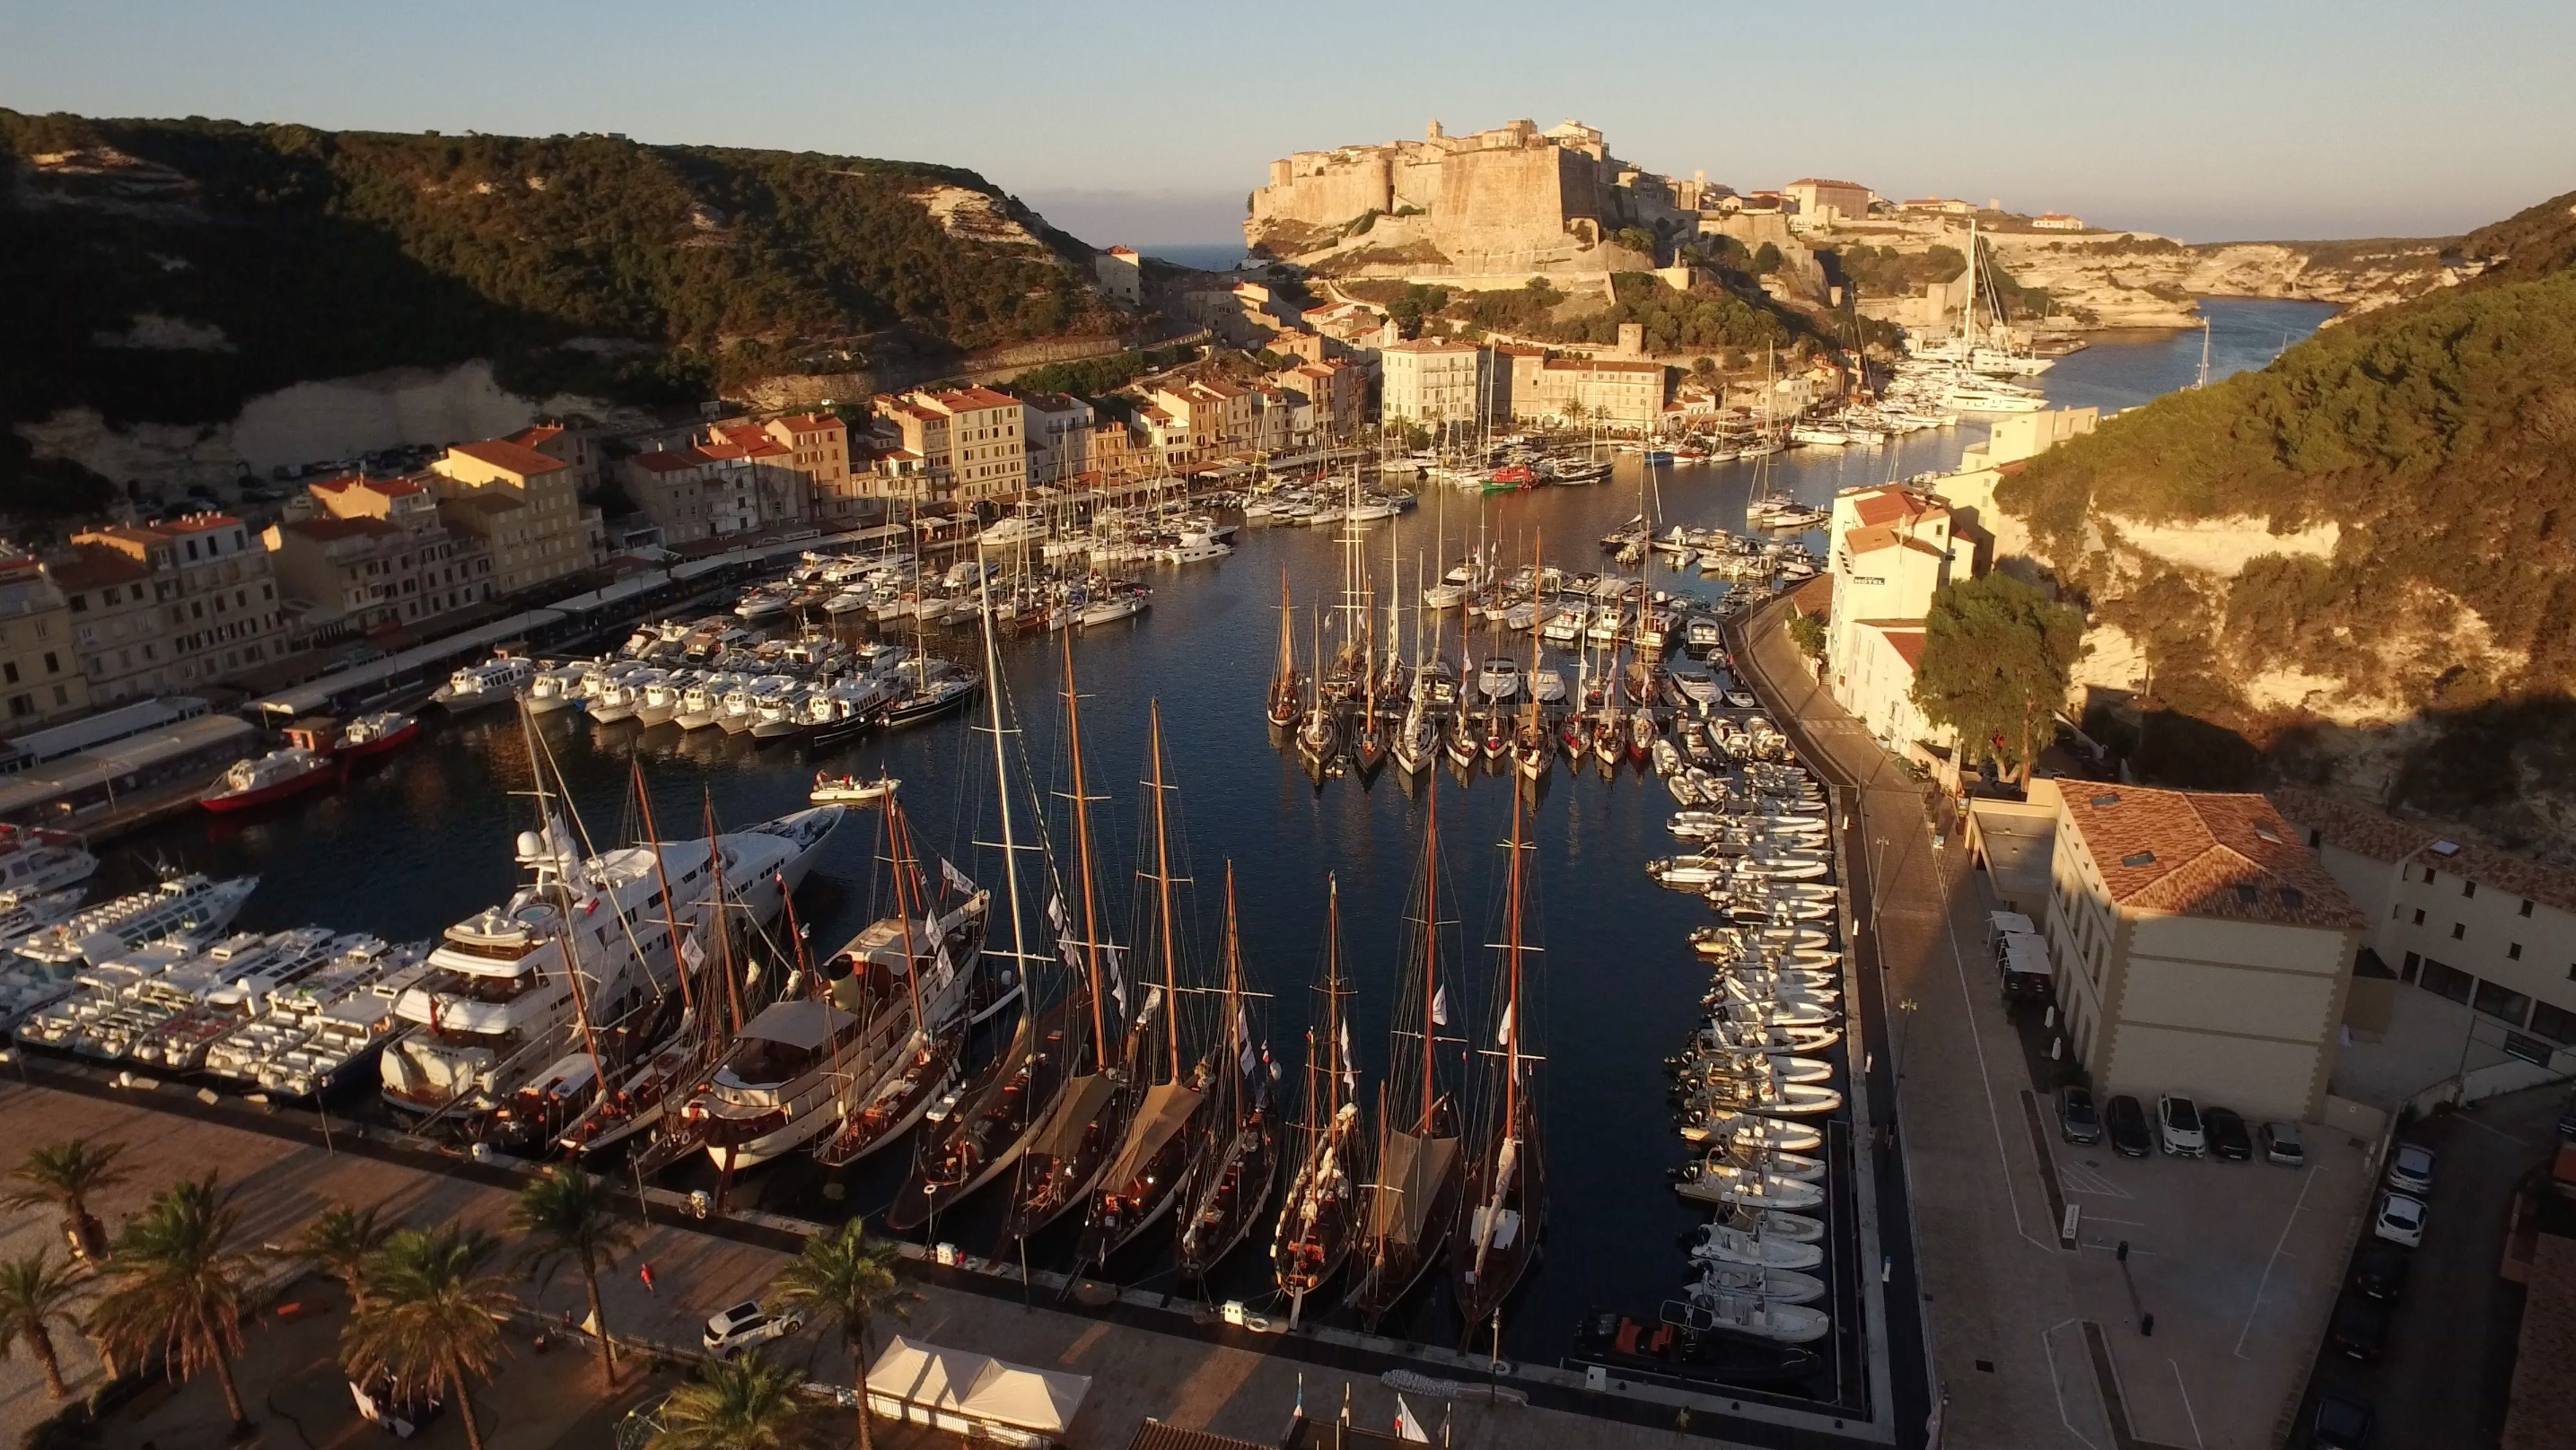 Port de Bonifacio photo Emmanuel Kirch by drone pilot Nicolas Di Stefano DR